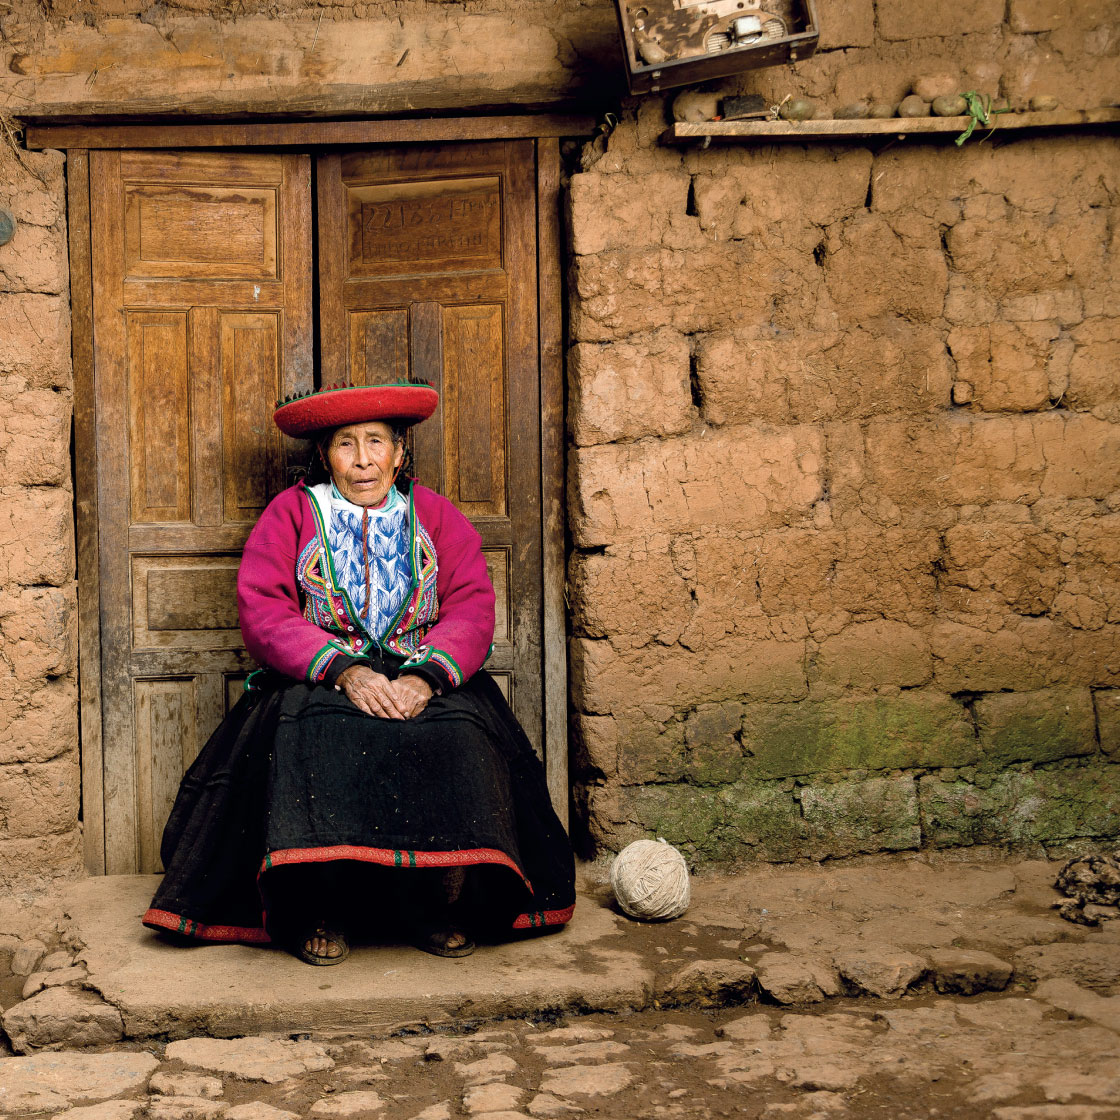 Photo by Joe Coca from Faces of Tradition.